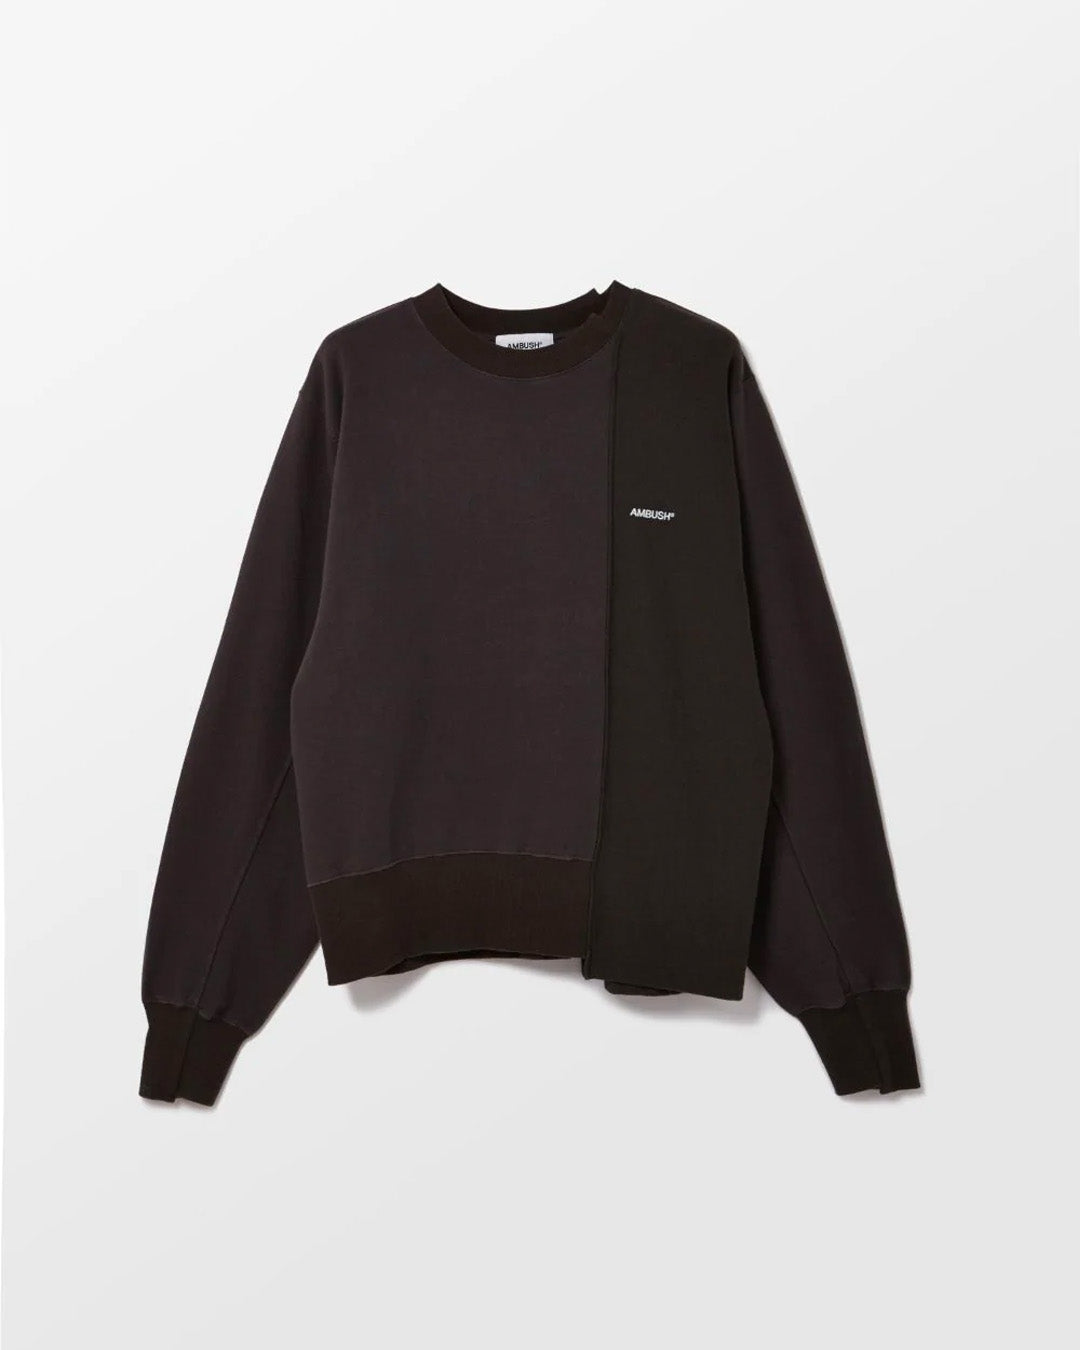 AMBUSH MIX FLEECE SWEATSHIRT